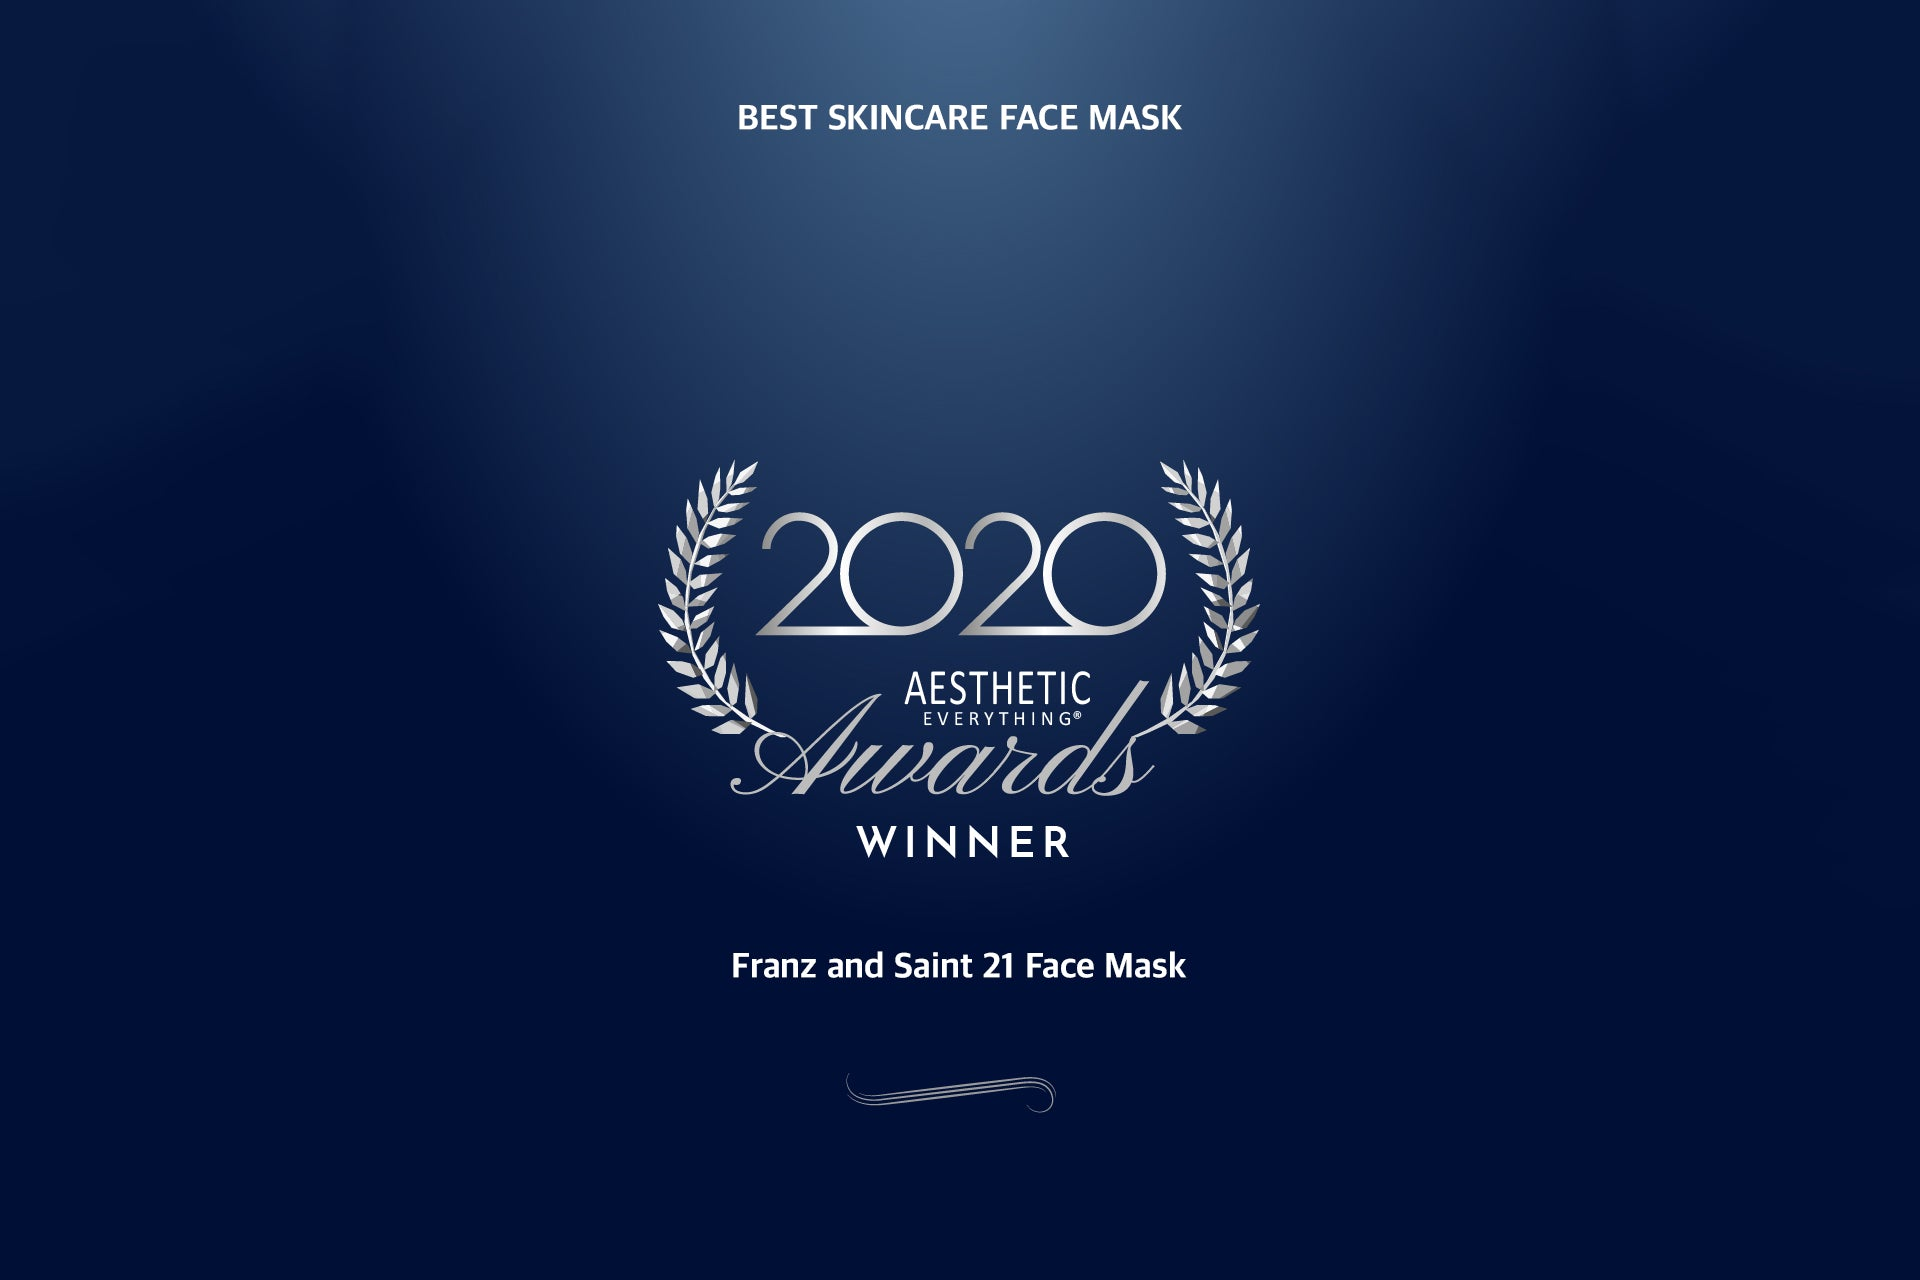 Franz and Saint 21 Face Masks are announced 2020 Aesthetic Everything ® Top Skincare Face Mask